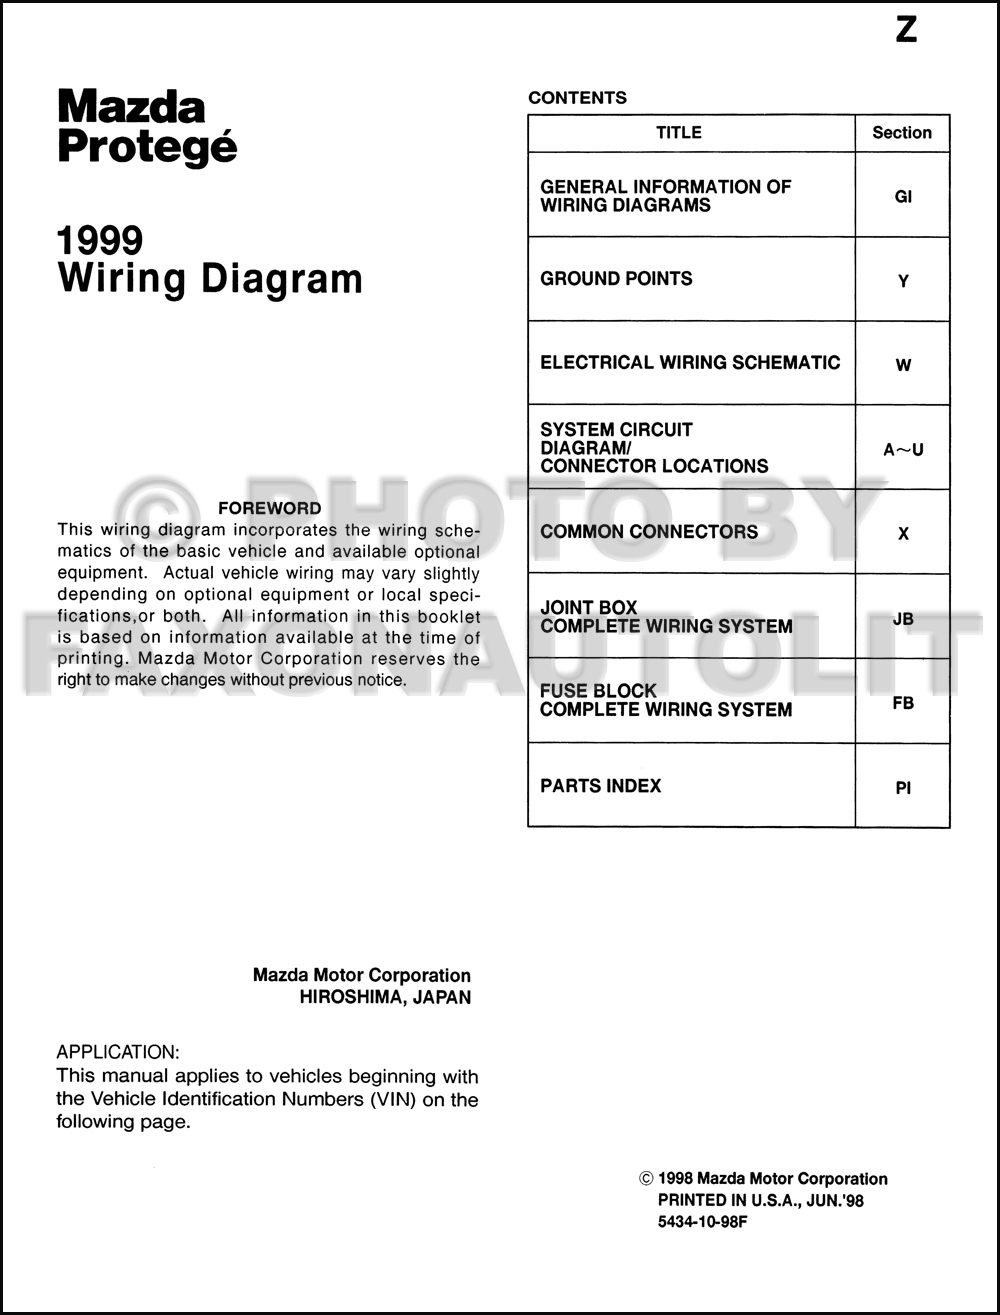 1999 mazda protege wiring diagram manual original .